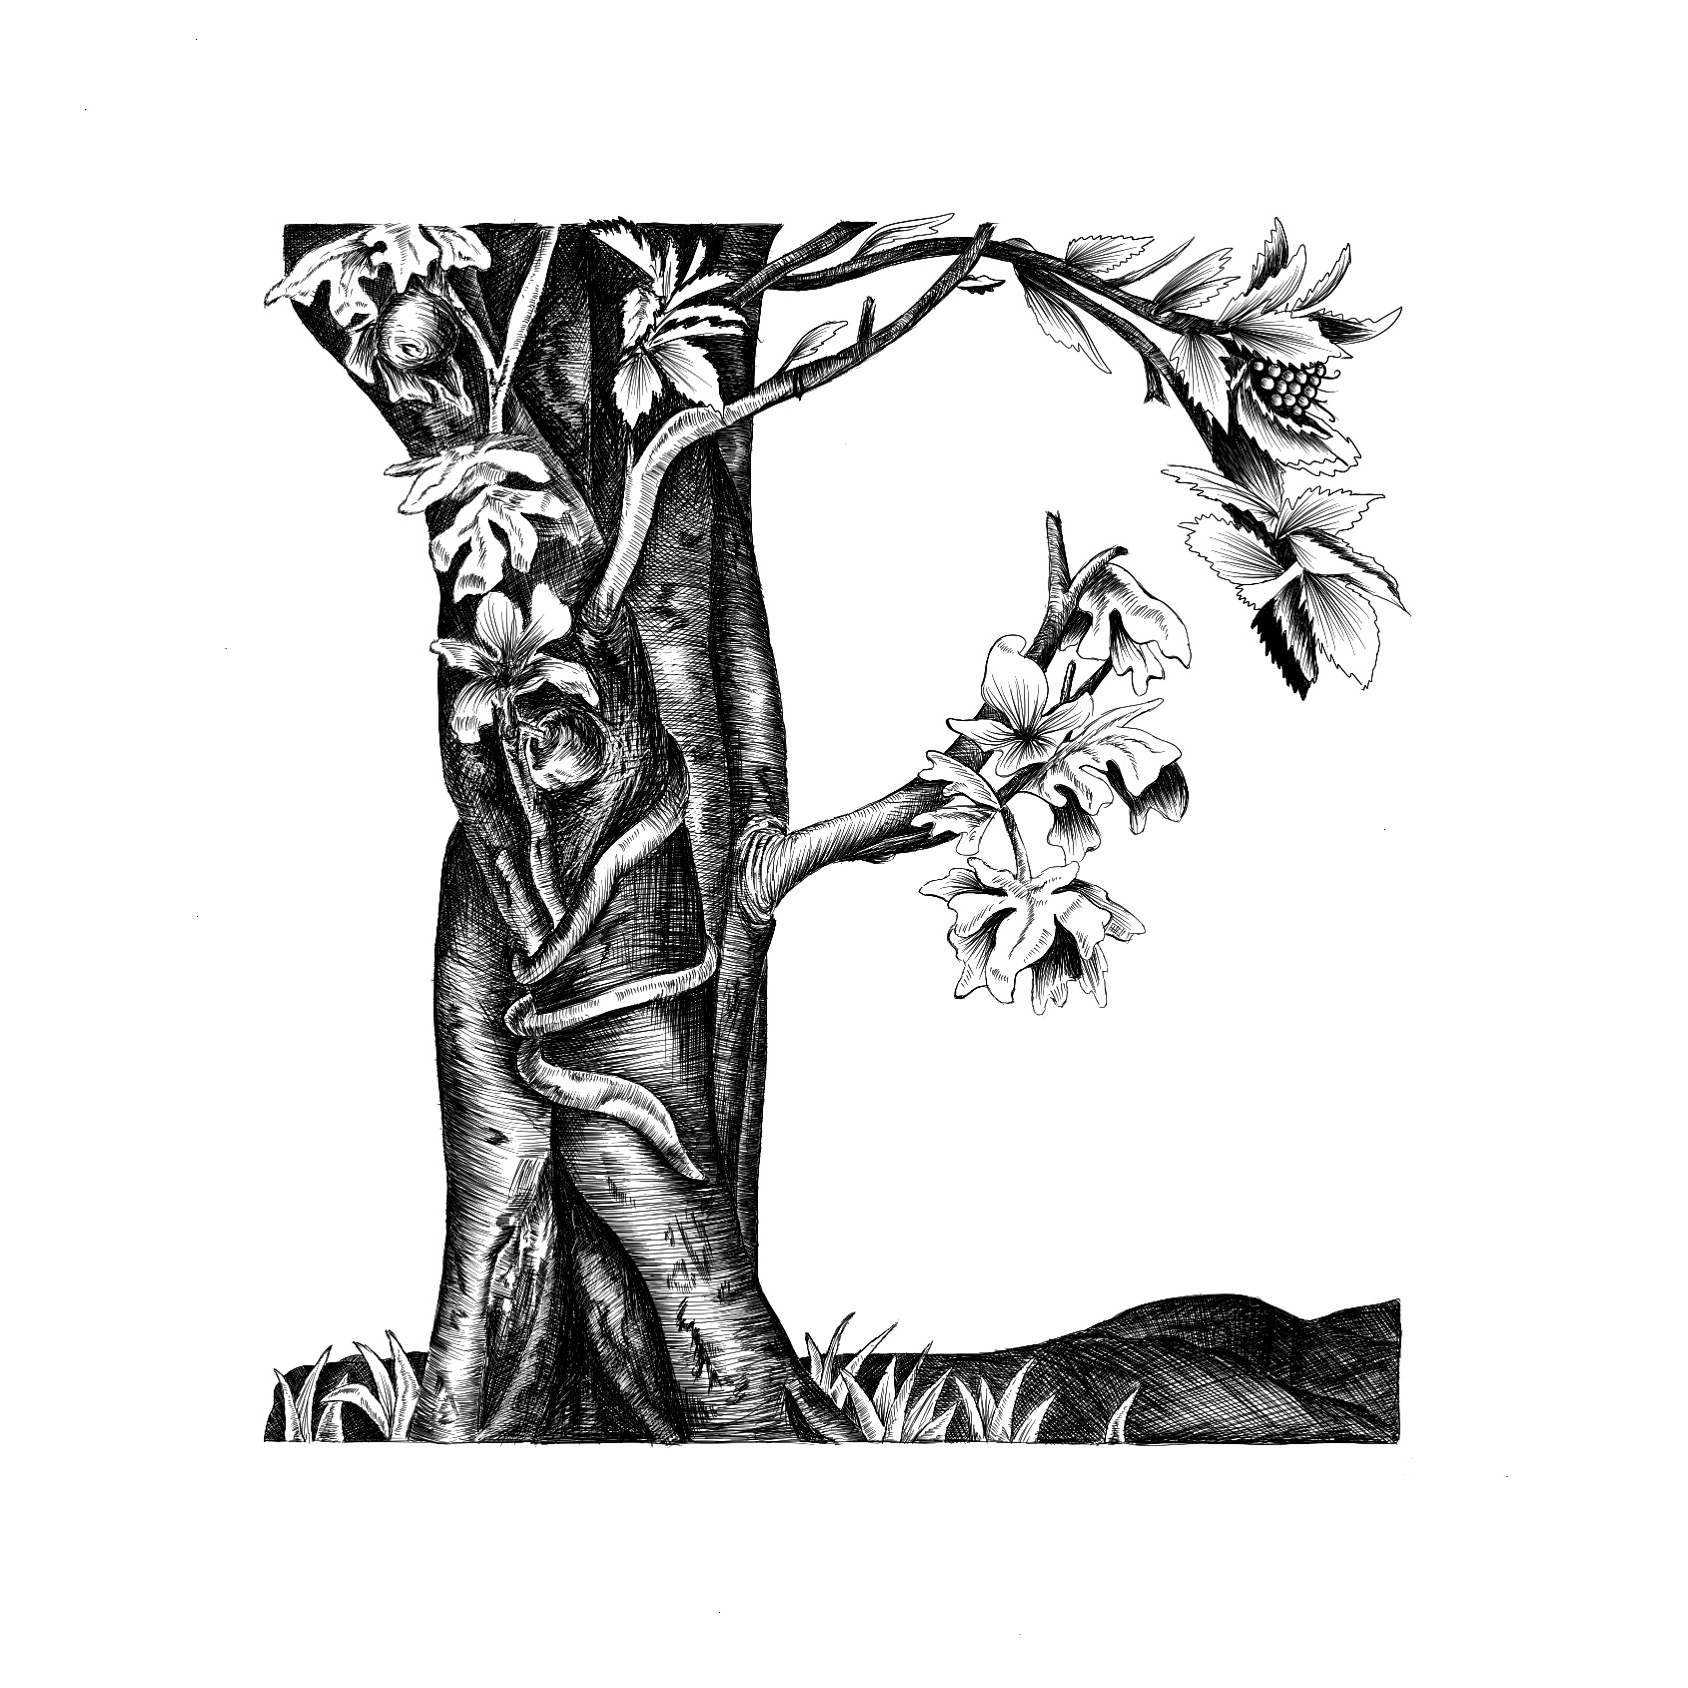 E for Engraving | Inspired by Albrecht Dürer |  #36daysoftype  🌟 It took me only an extra 74939363 hours of hatching and cross hatching, but I made it!  Fun fact- One of the most common scenes to depict in the 1500s was that of Adam and Eve in the Garden of Eden. The Fall of Man is one of Dürer's most famous engravings and my personal favorite. This is my interpretation of it, with the soft and hard leaves representing the female and male characters.